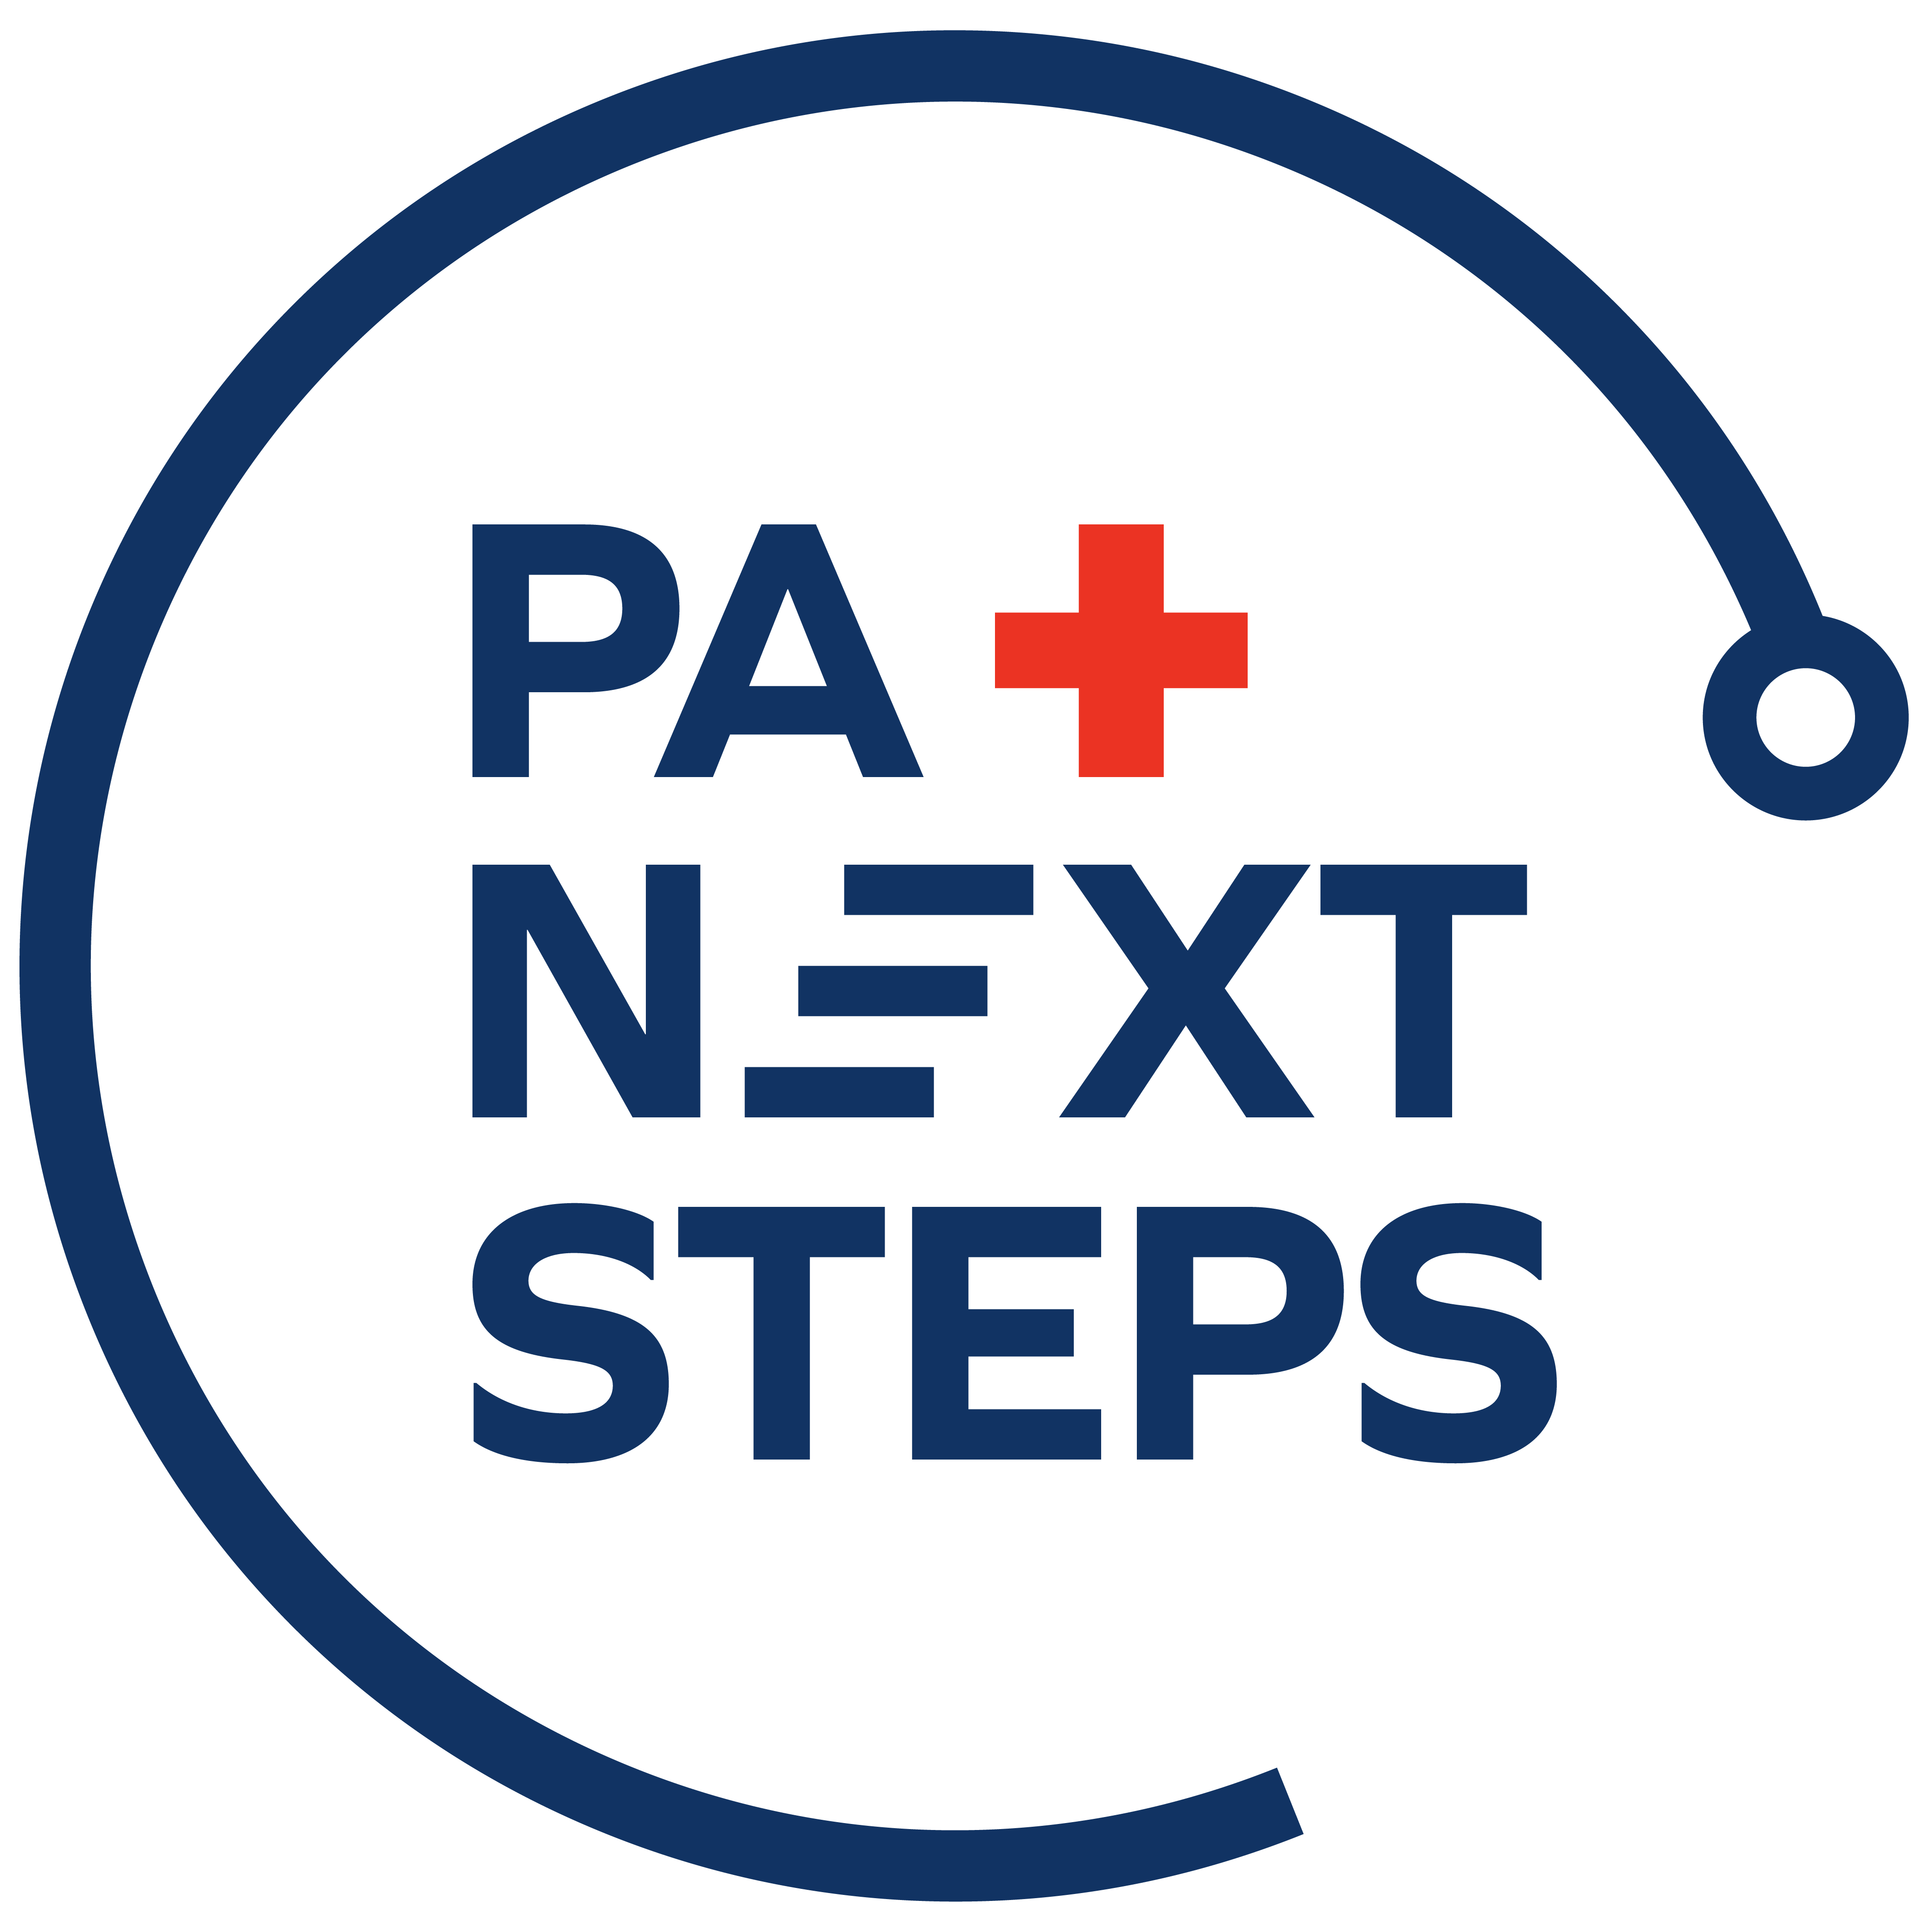 PA Next Steps logo